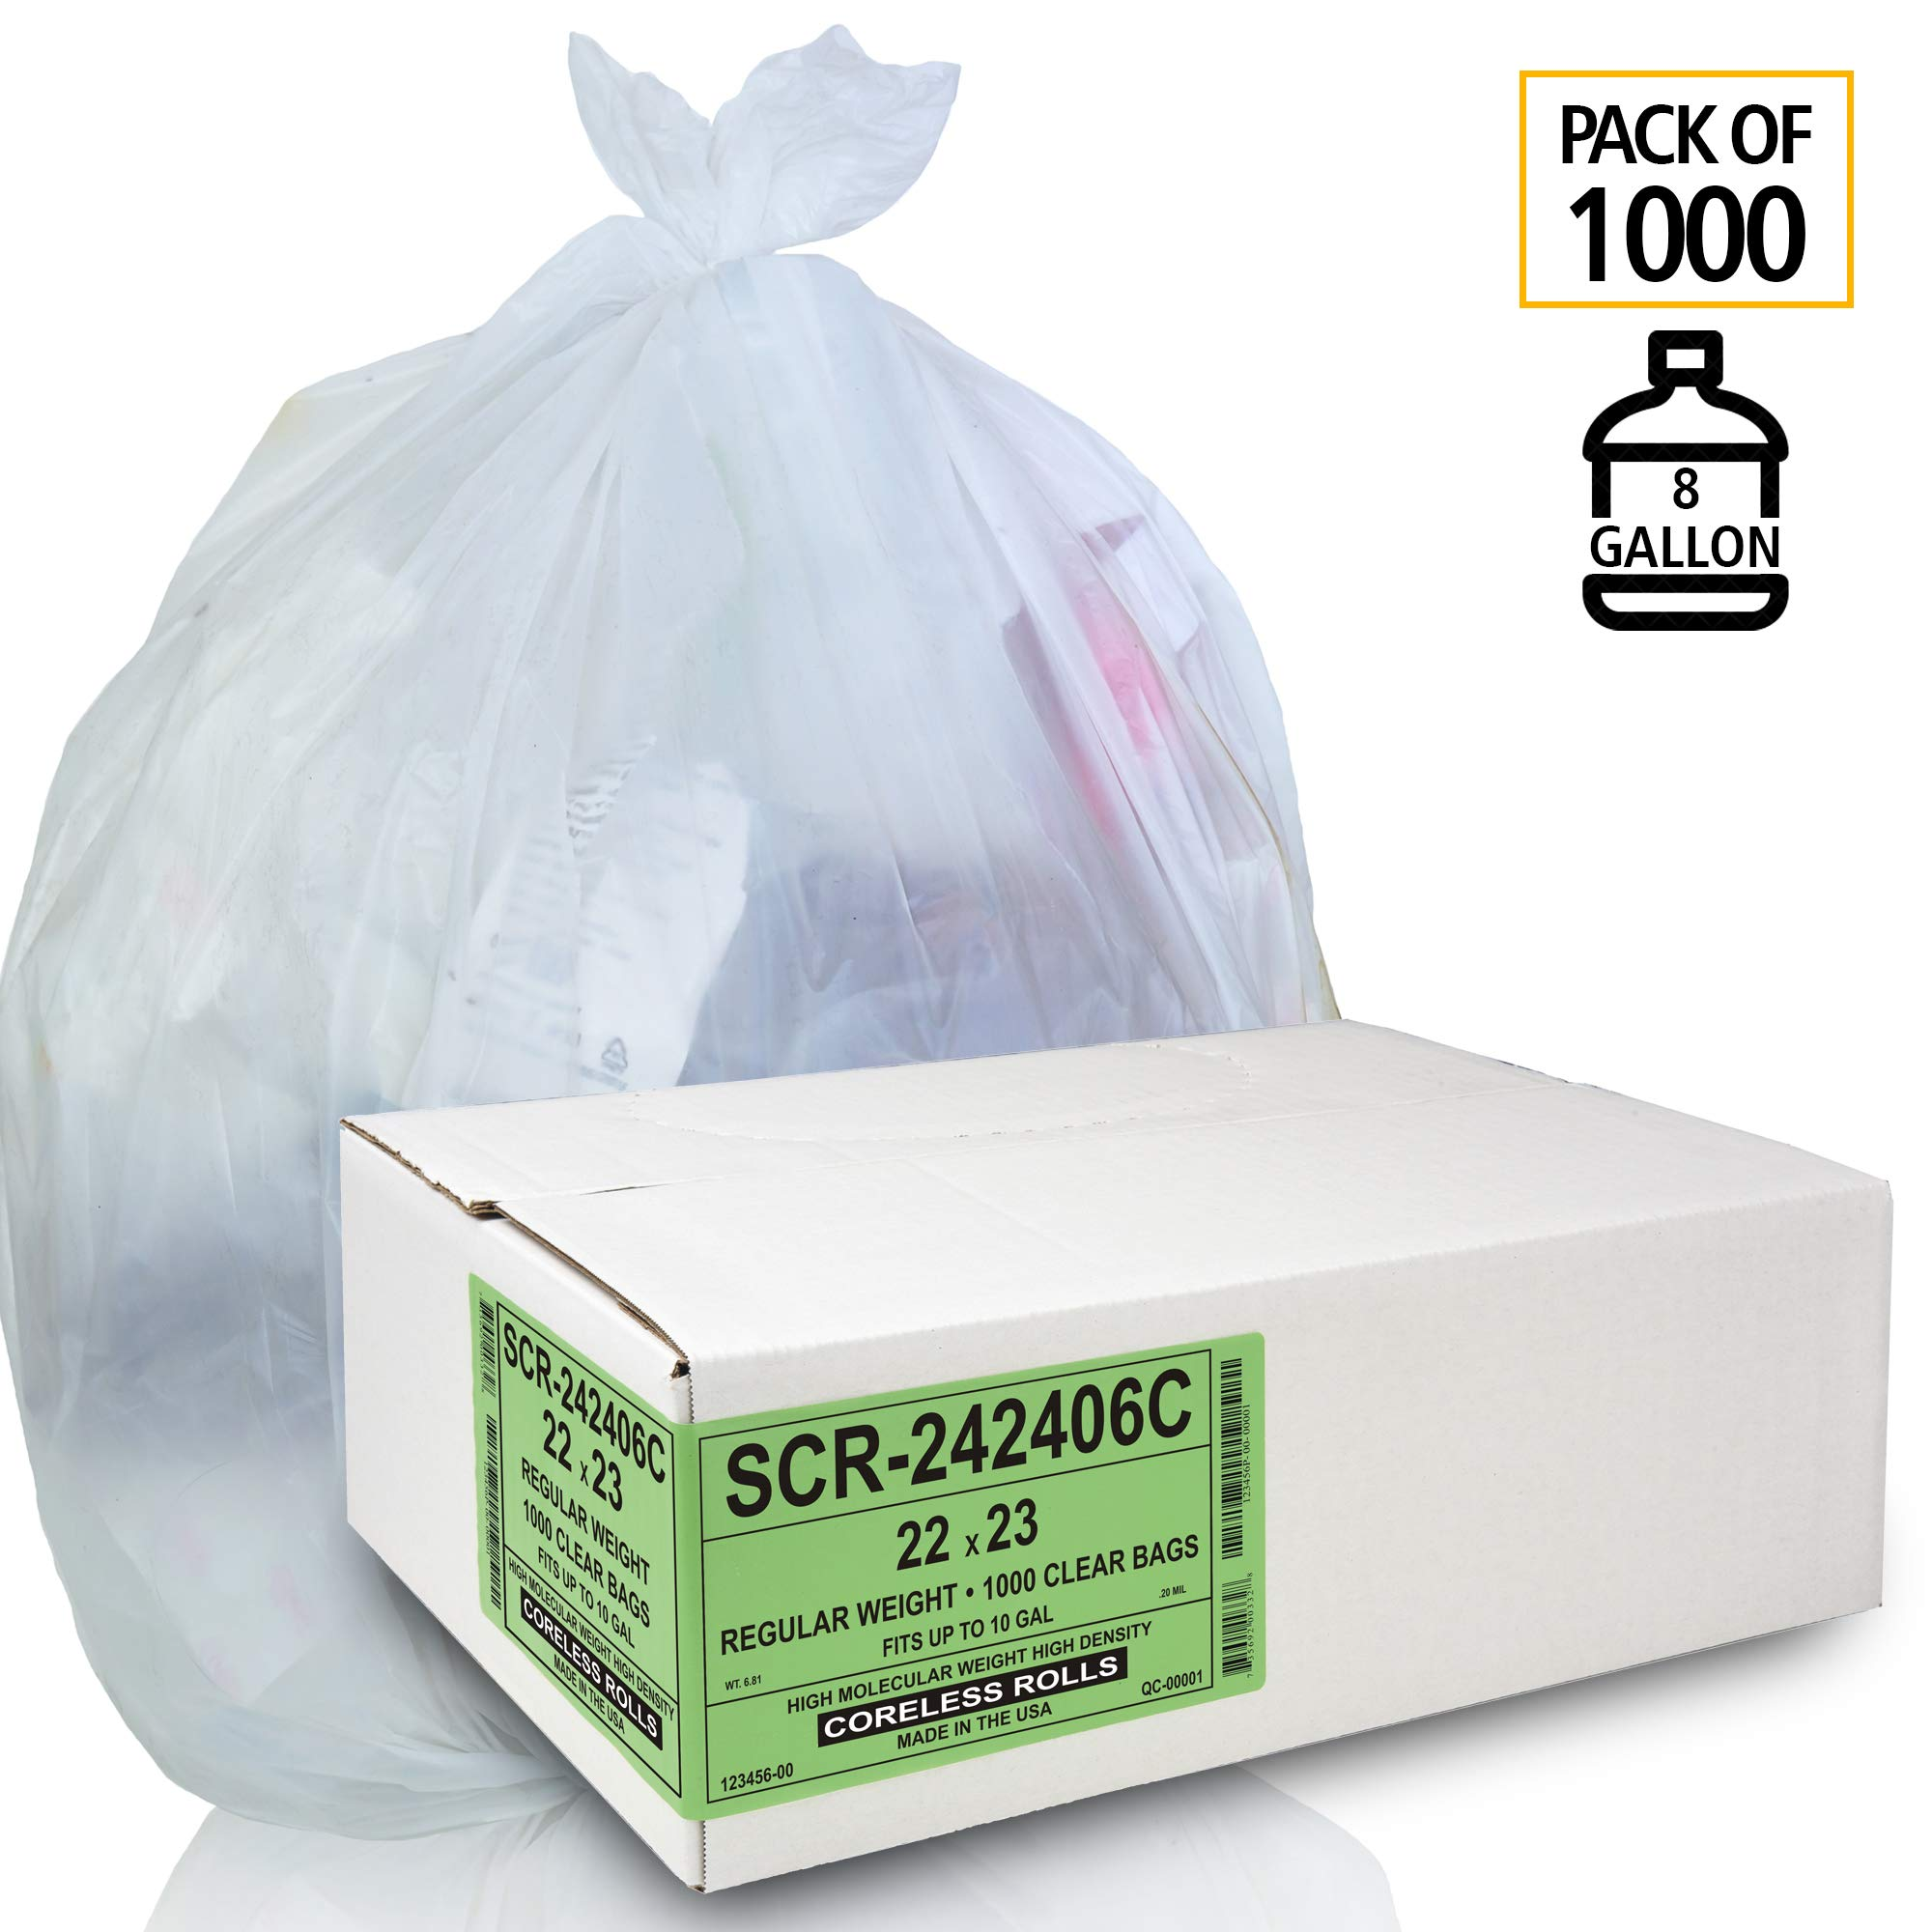 Aluf Plastics 8 Gallon Trash Bags - (Commercial 1000 Pack) - Source Reduction Series Value High Density 6 Micron Gauge - Intended for Home, Office, Bathroom, Paper, Styrofoam